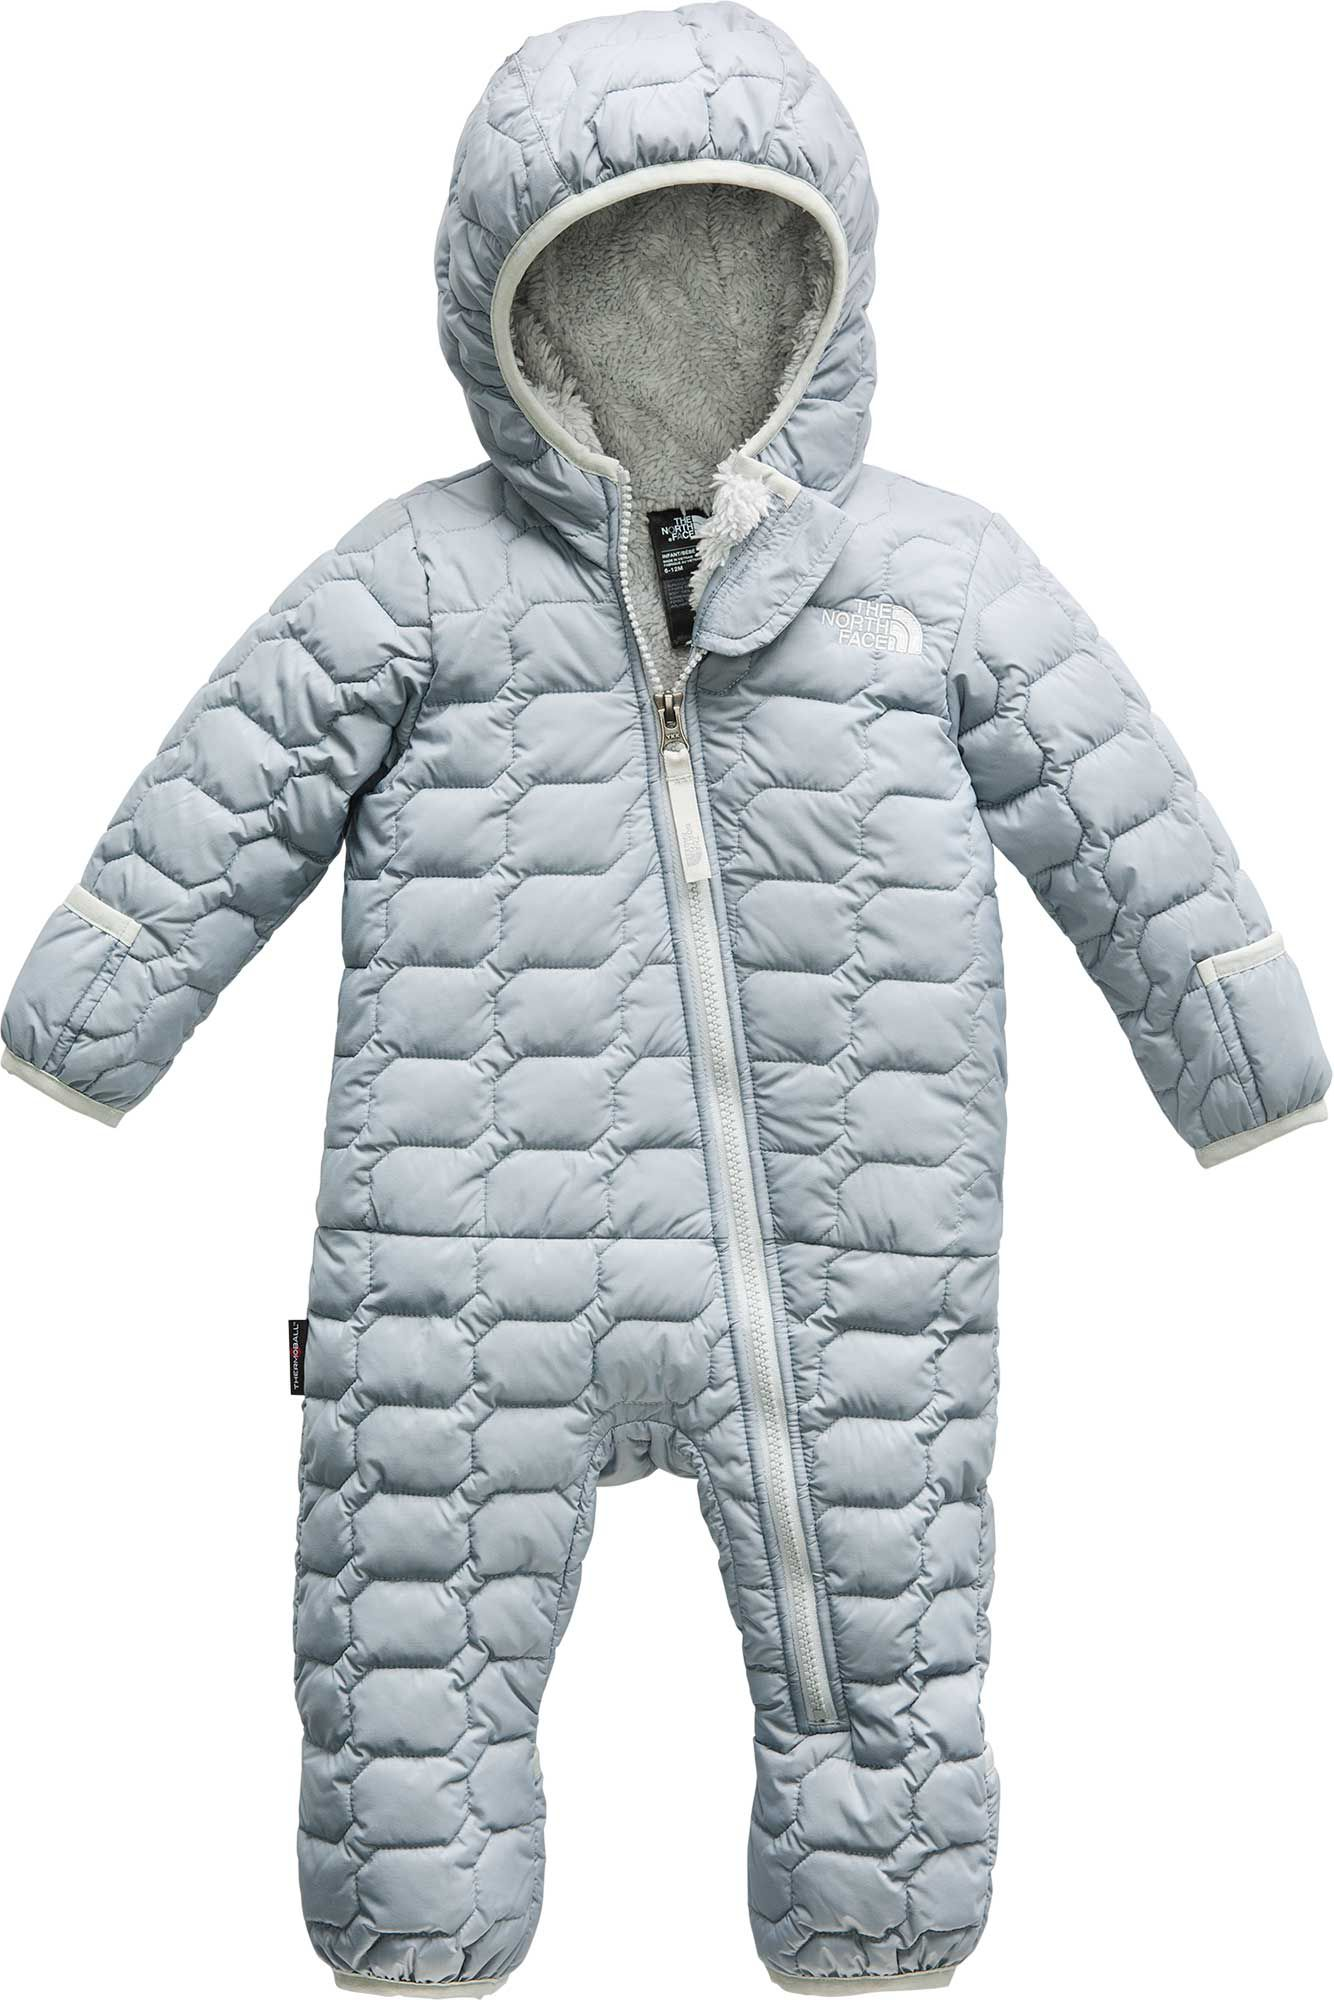 479f84db4912 The North Face Infant ThermoBall Bunting